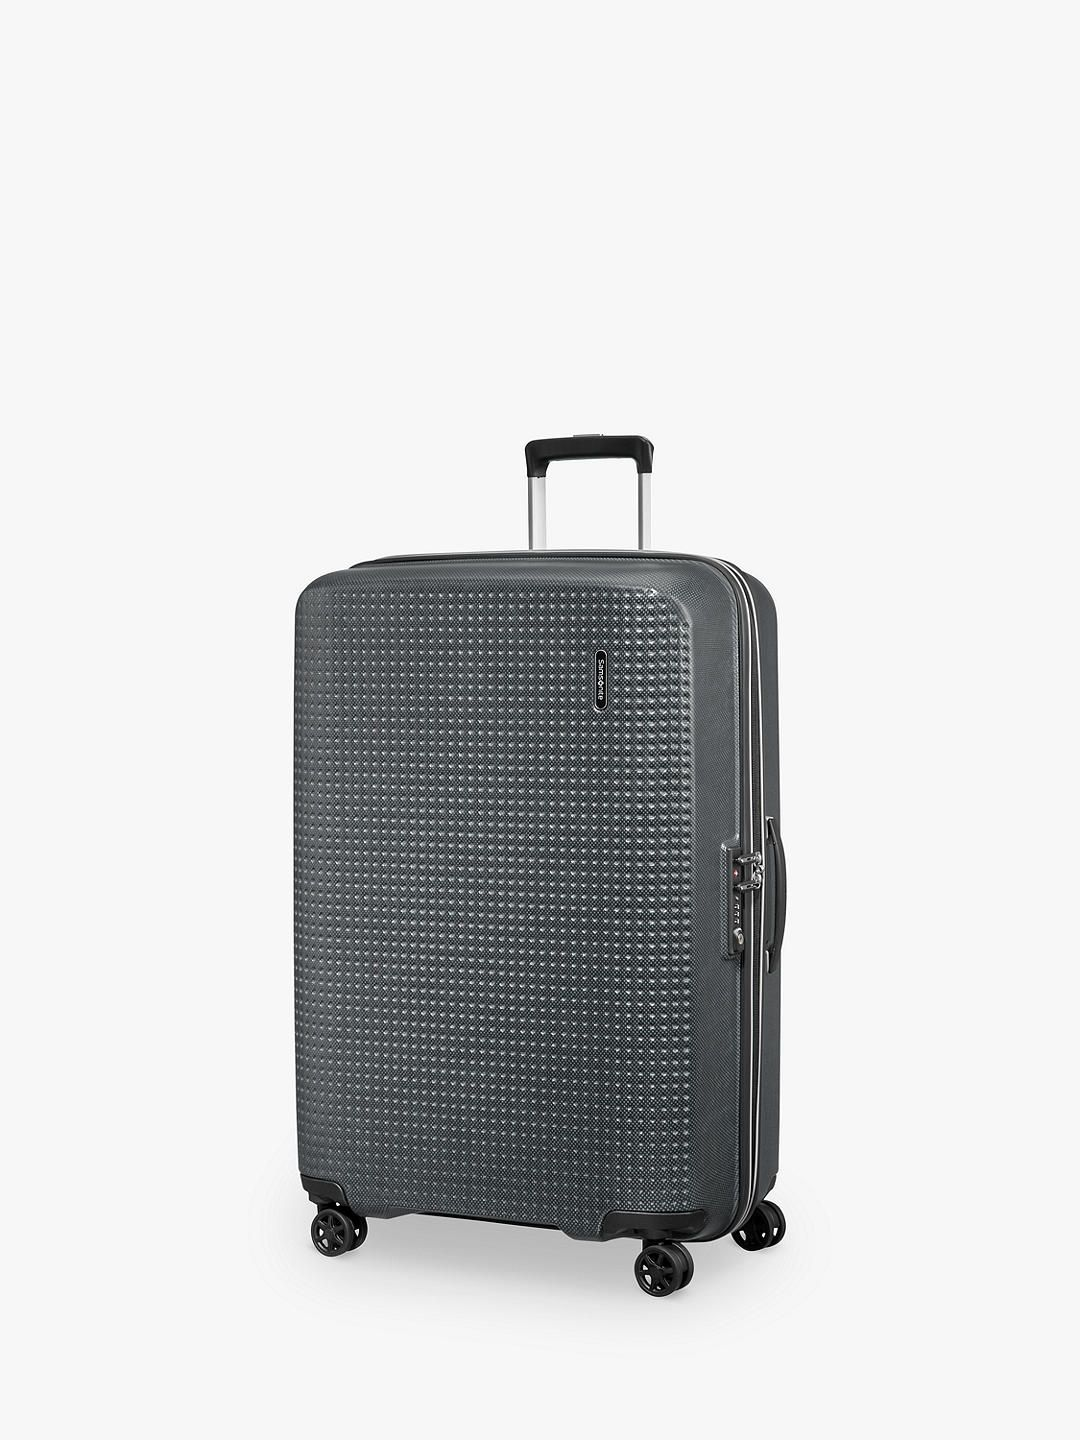 Samsonite Pixon